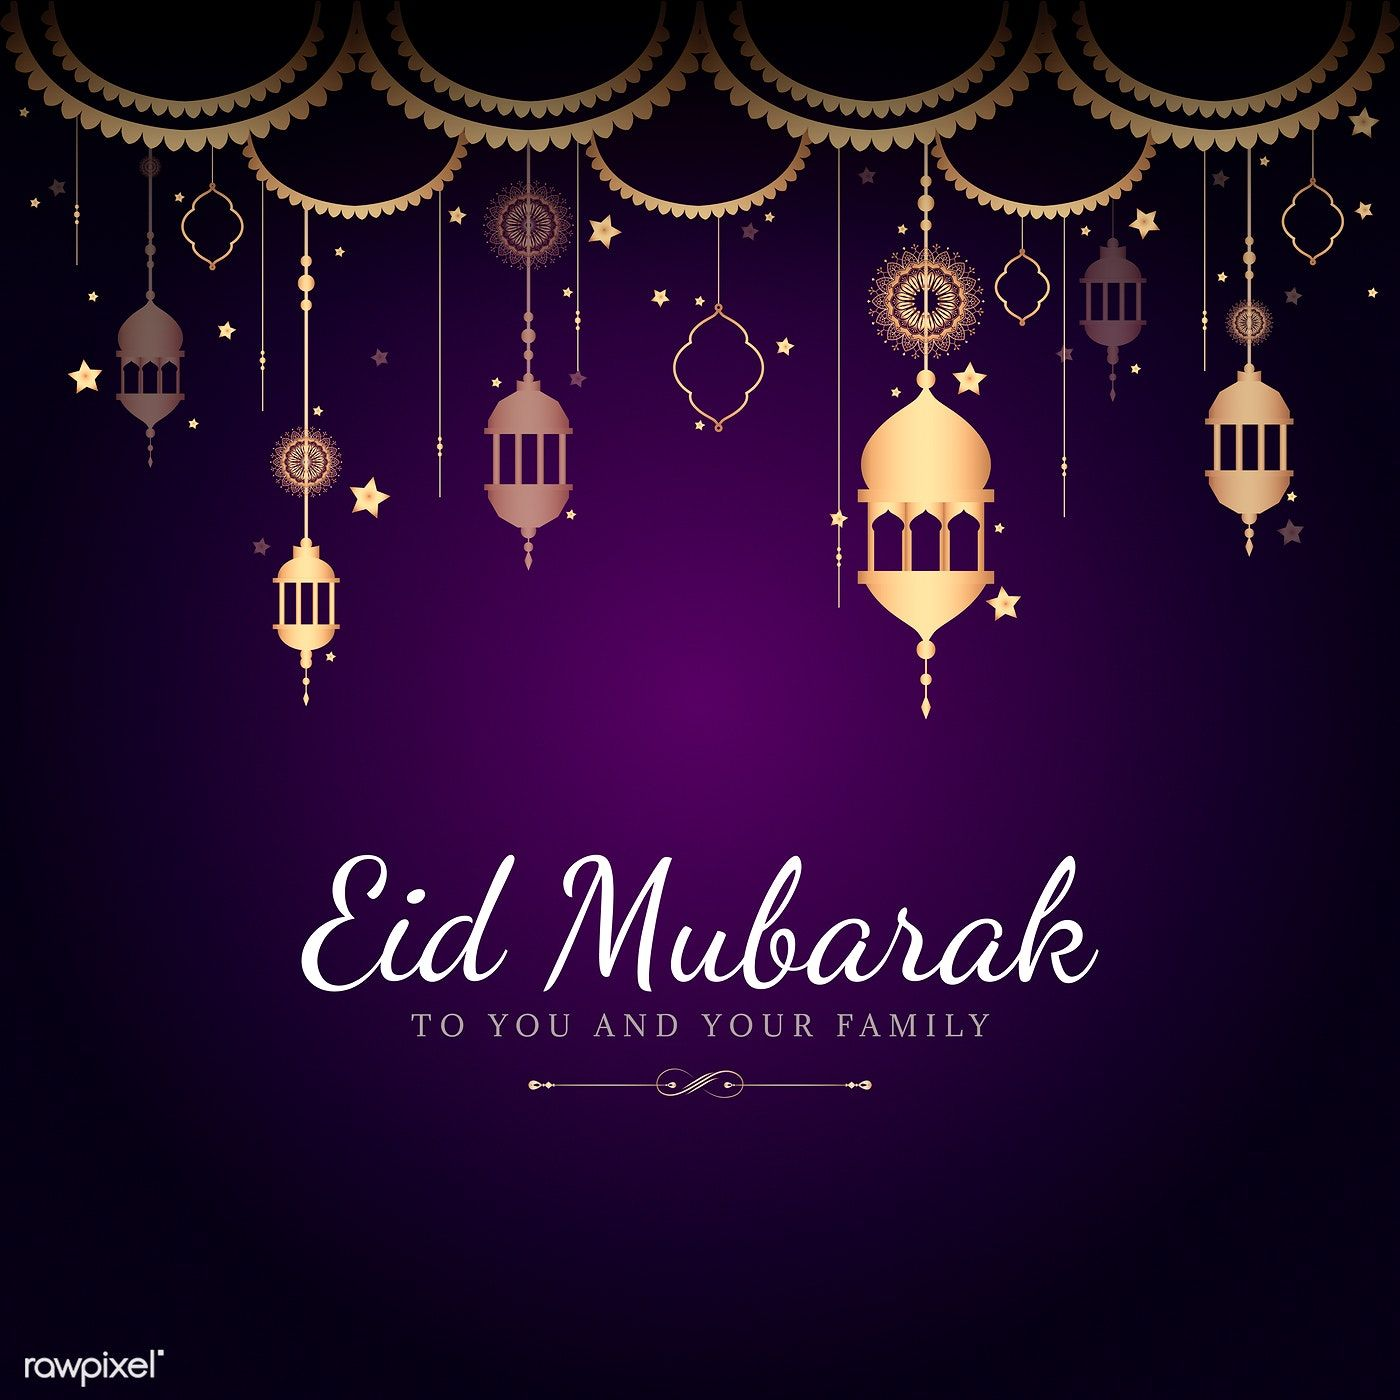 Eid Mubarak card with lanterns pattern background  free image by